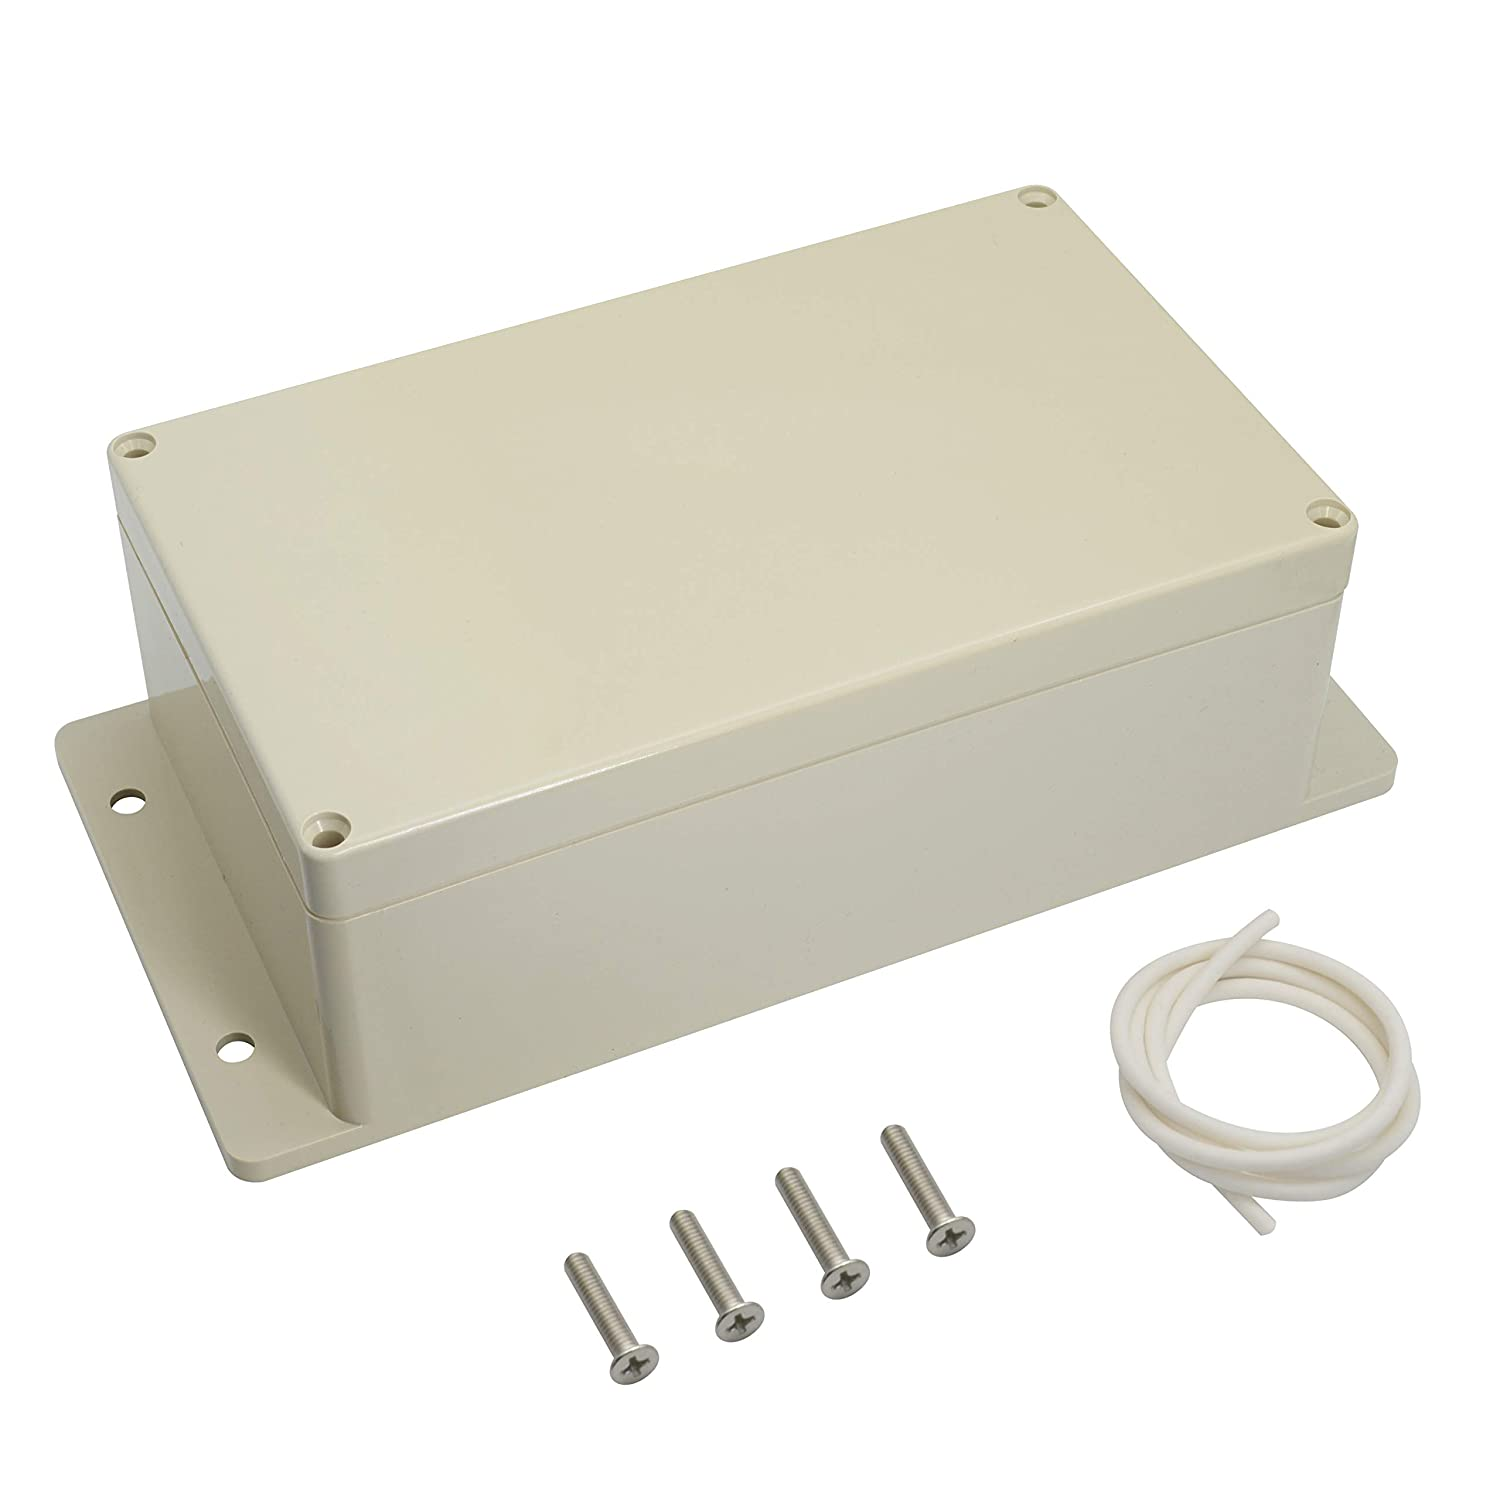 LeMotech Waterproof Dustproof IP65 ABS Plastic Junction Box Universal Electric Project Enclosure Pale Gray and Fixed Ear 7.9x4.7x2.95 200mmx120mmx75mm